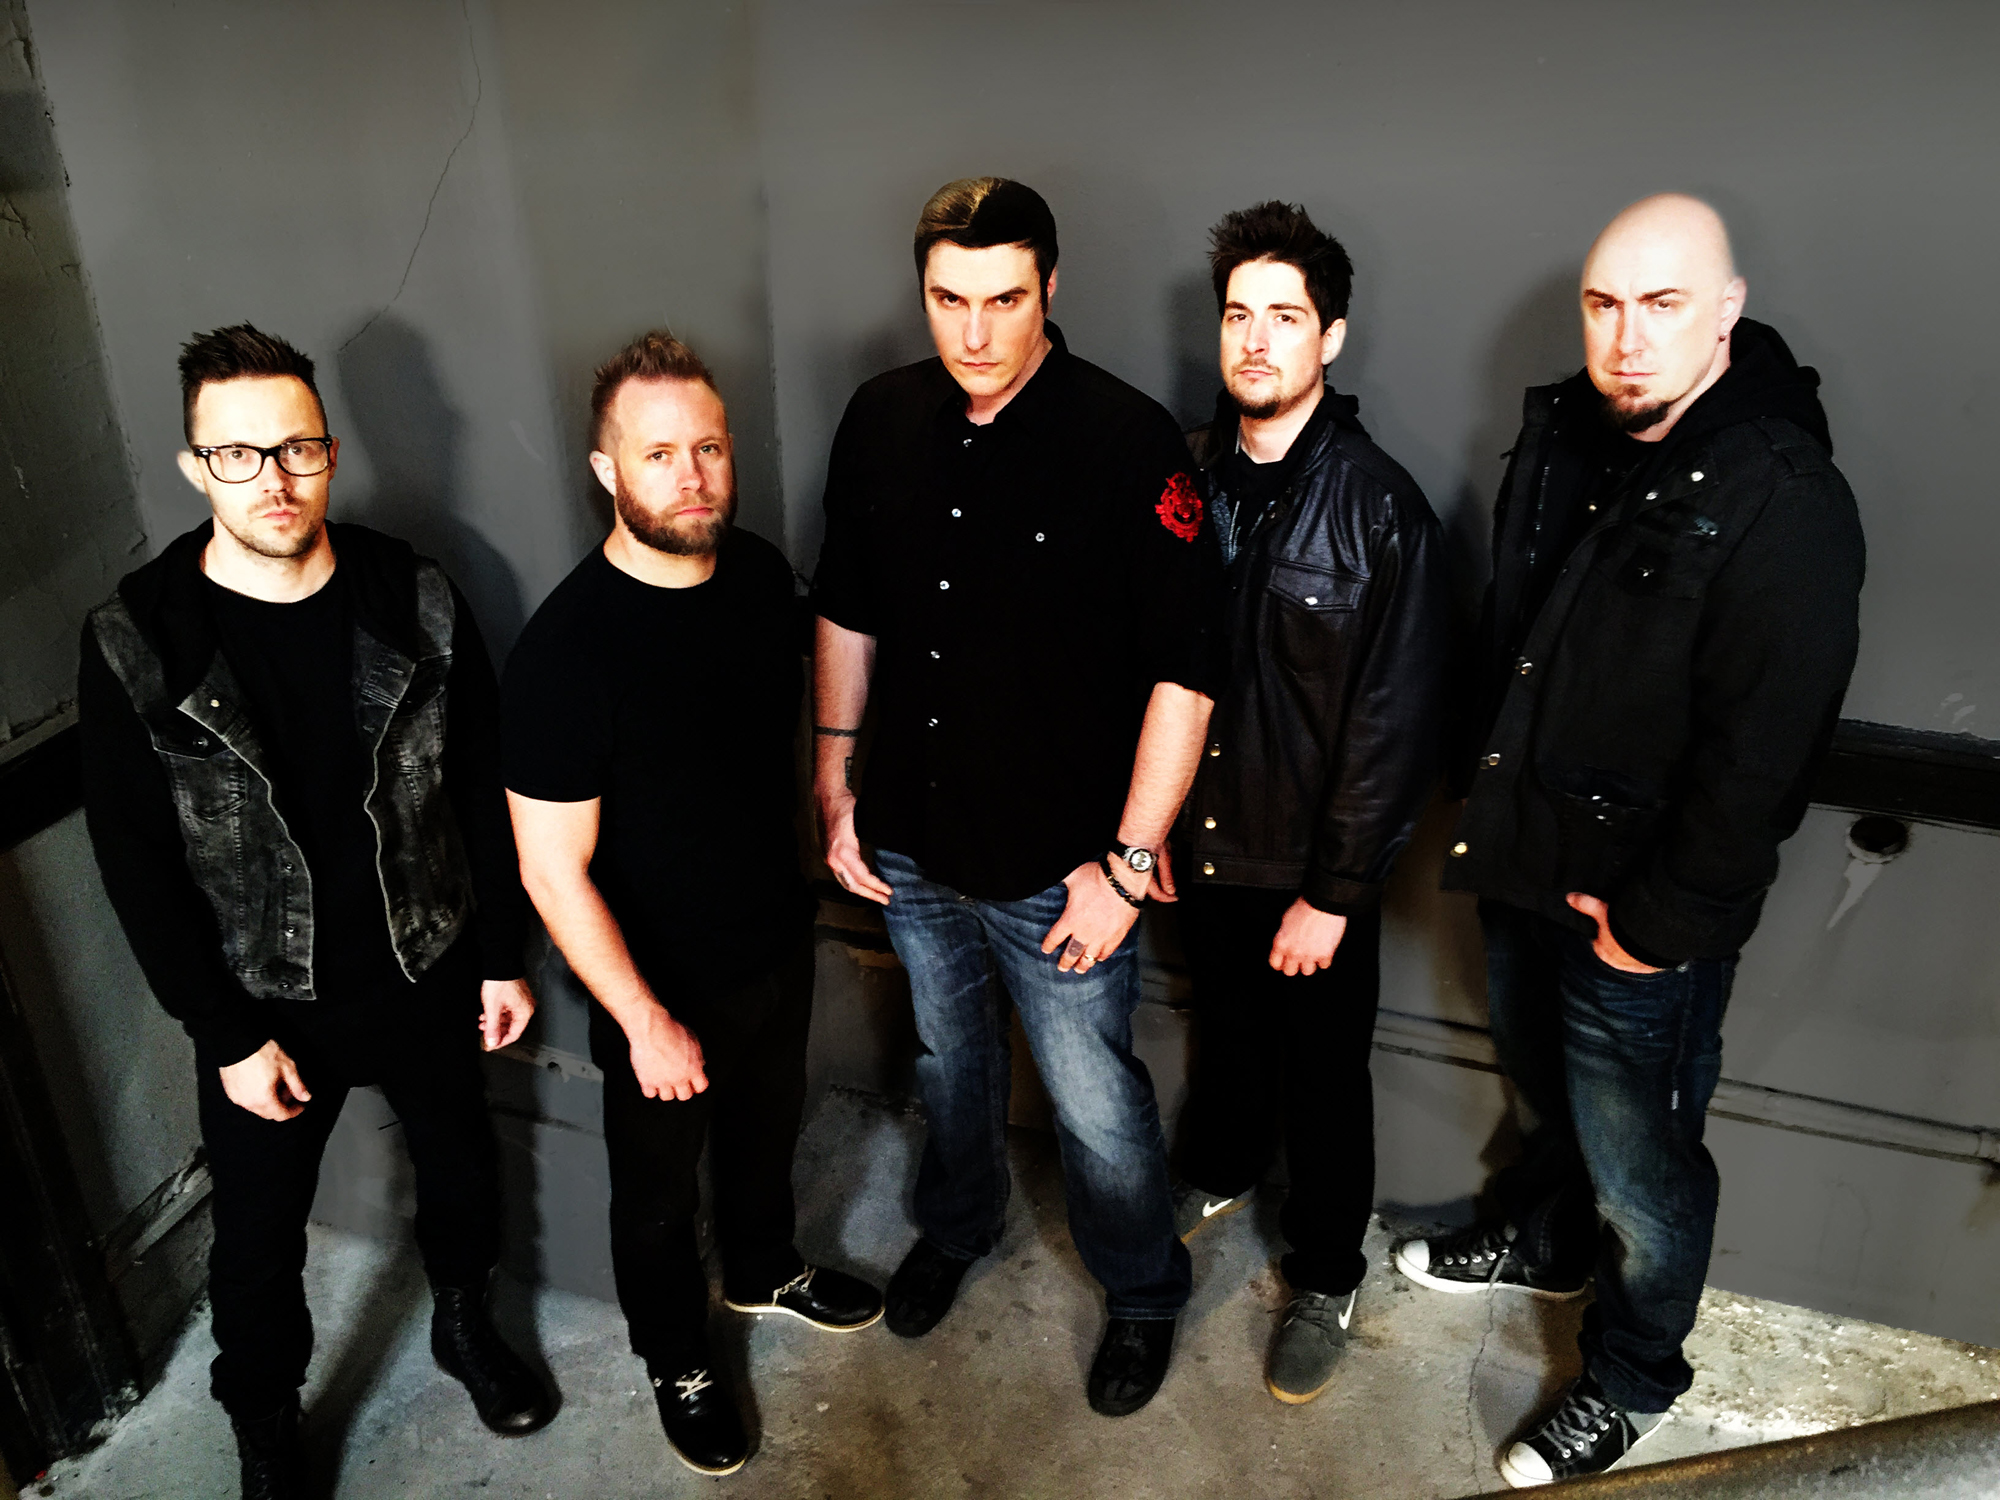 Breaking benjamin headlines axes anchors music cruise with breaking benjamin headlines axes anchors music cruise with motionless in white zakk wylde and more nepa scene kristyandbryce Choice Image